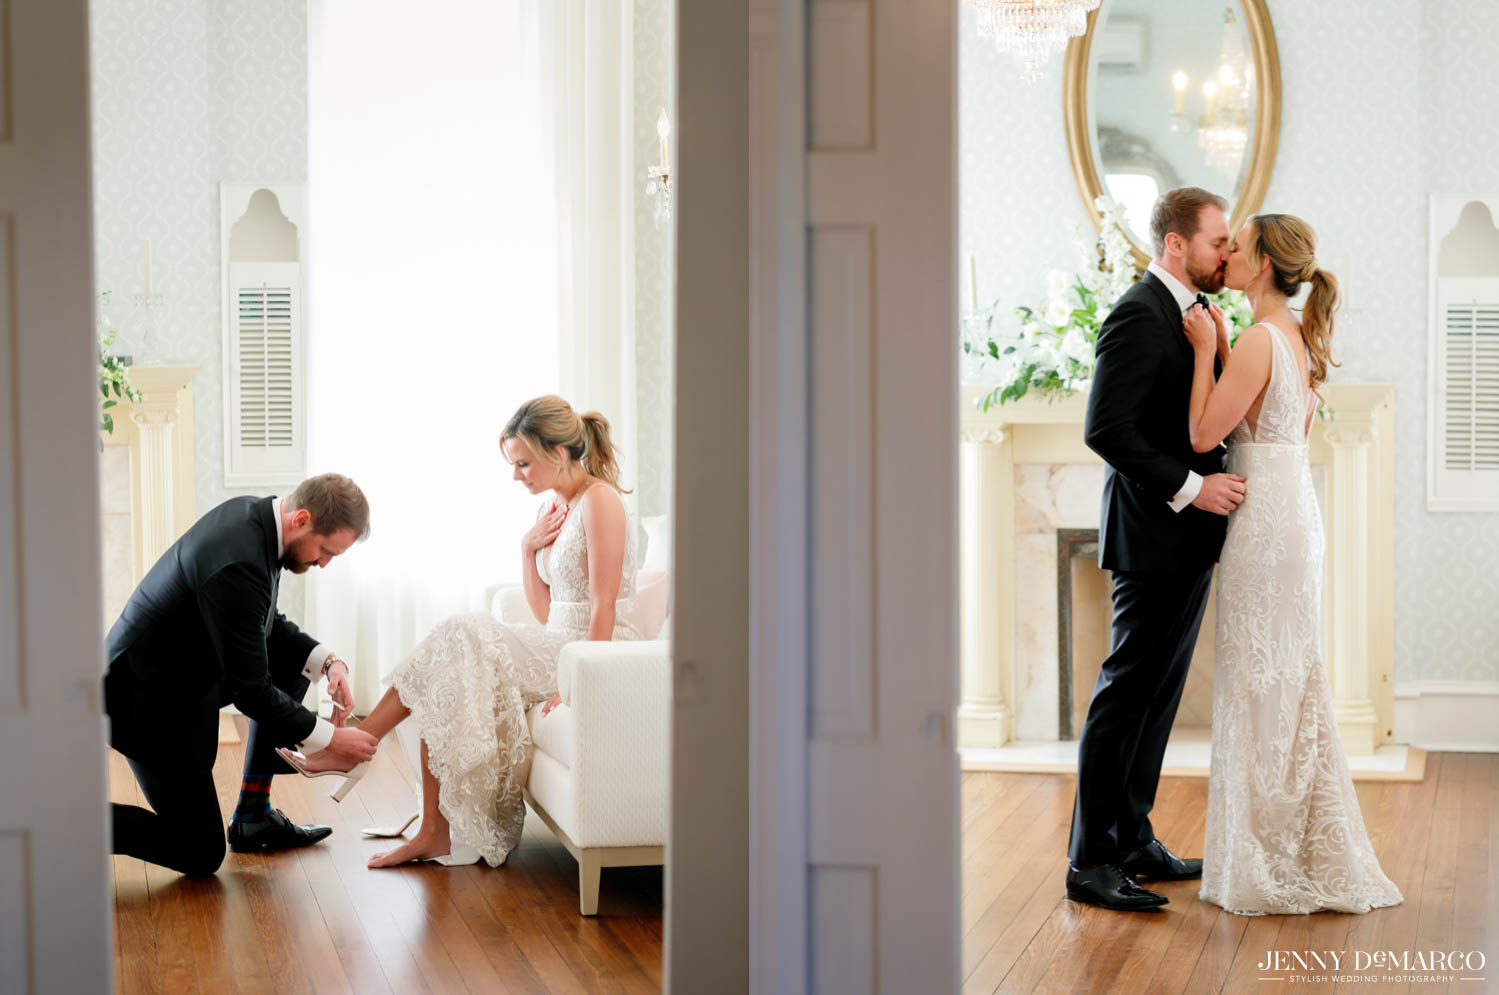 groom putting on the bride's shoes and bride and groom kissing before the ceremony